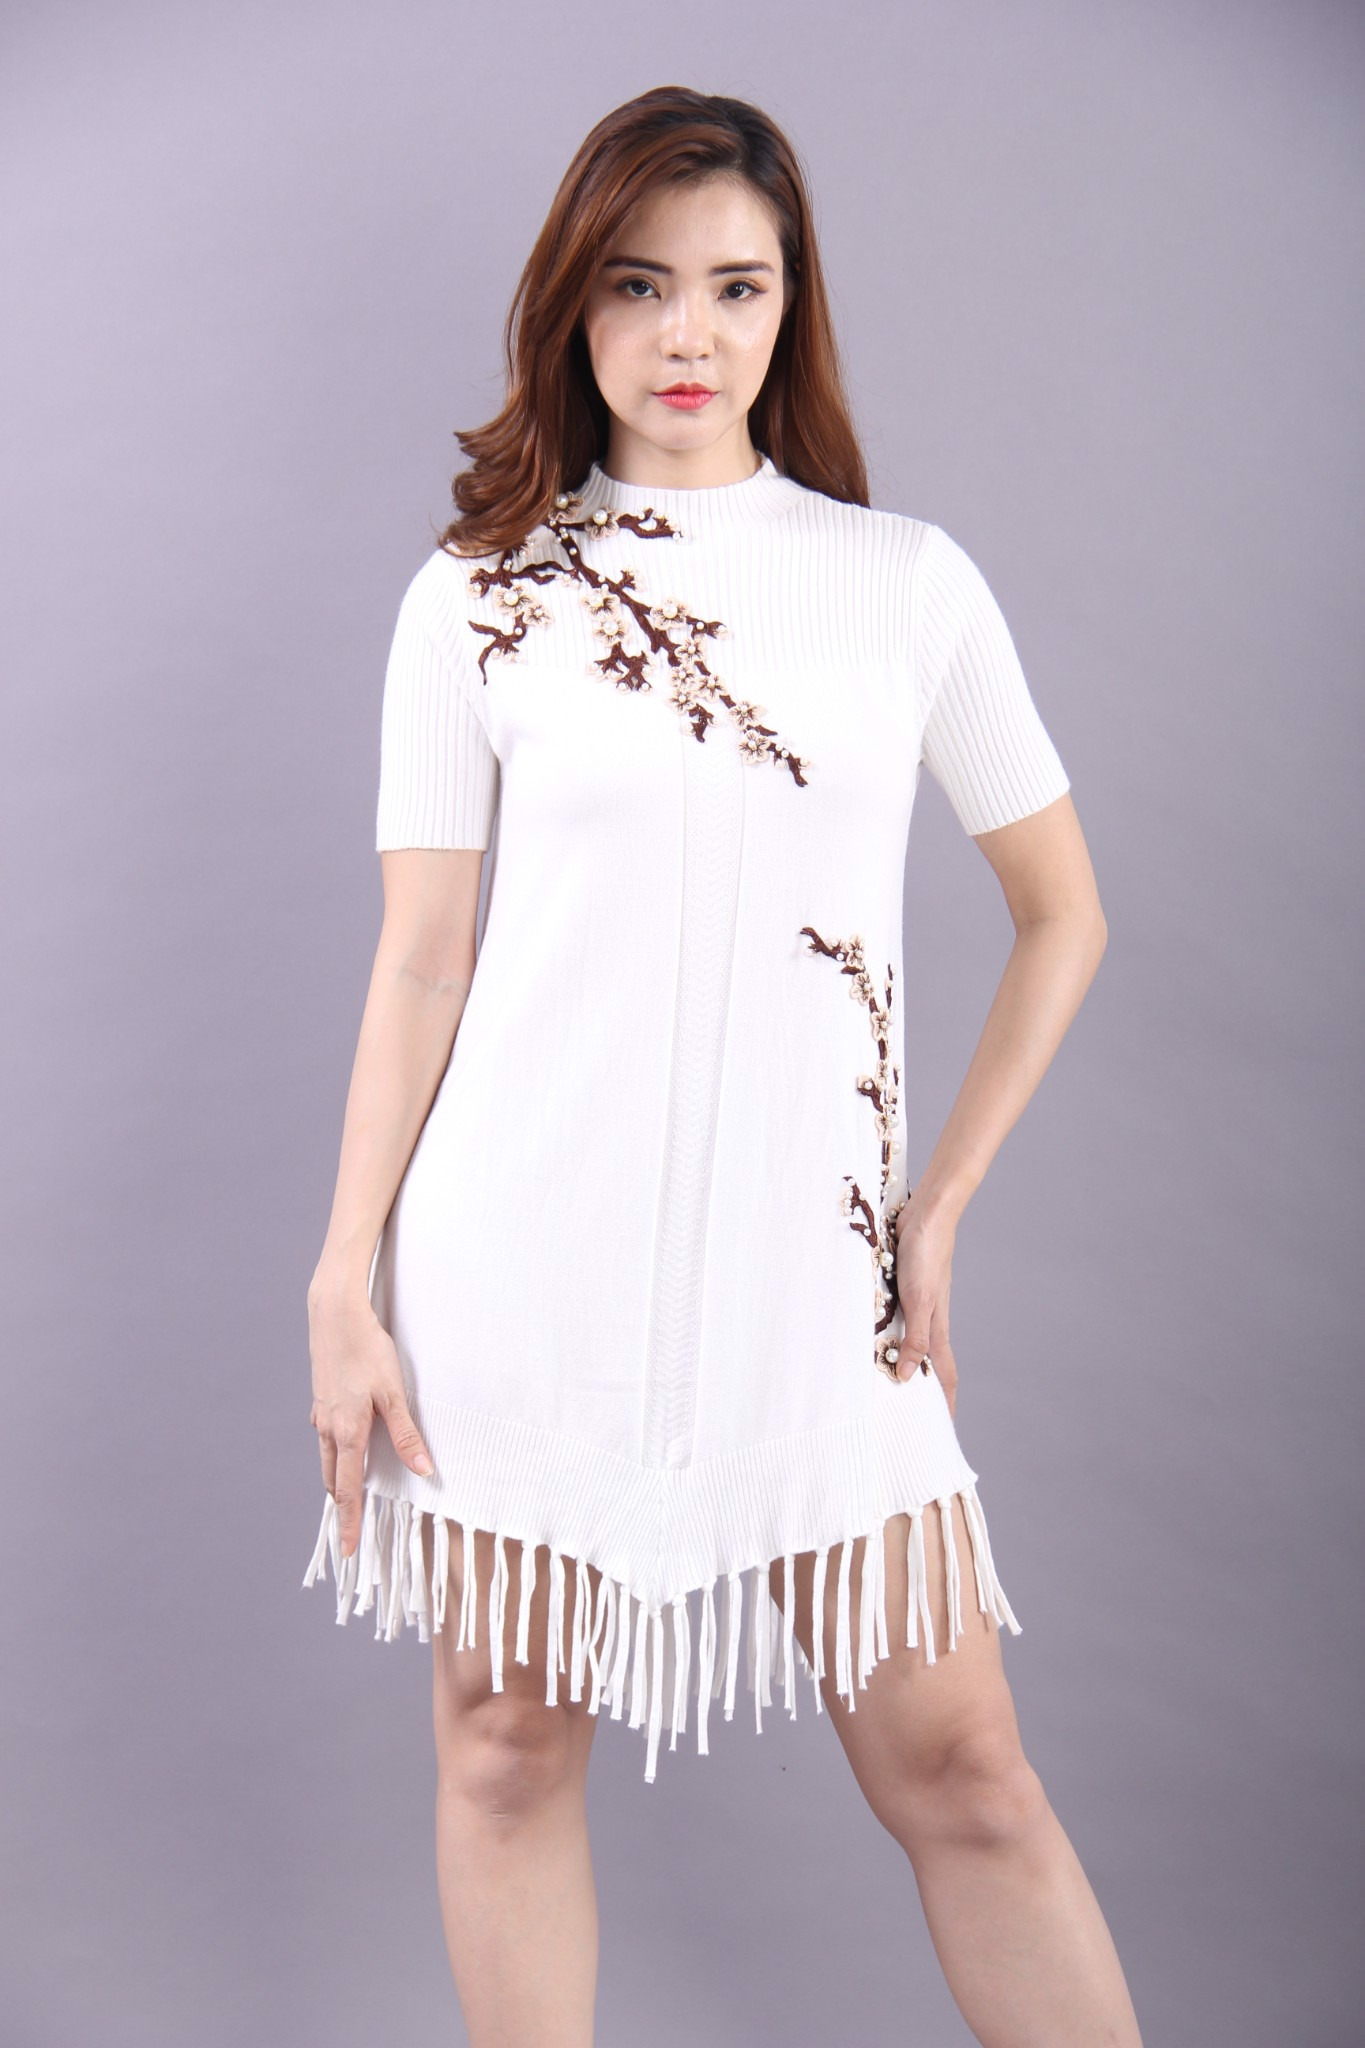 Apricot blossom and pearls white flapper dress